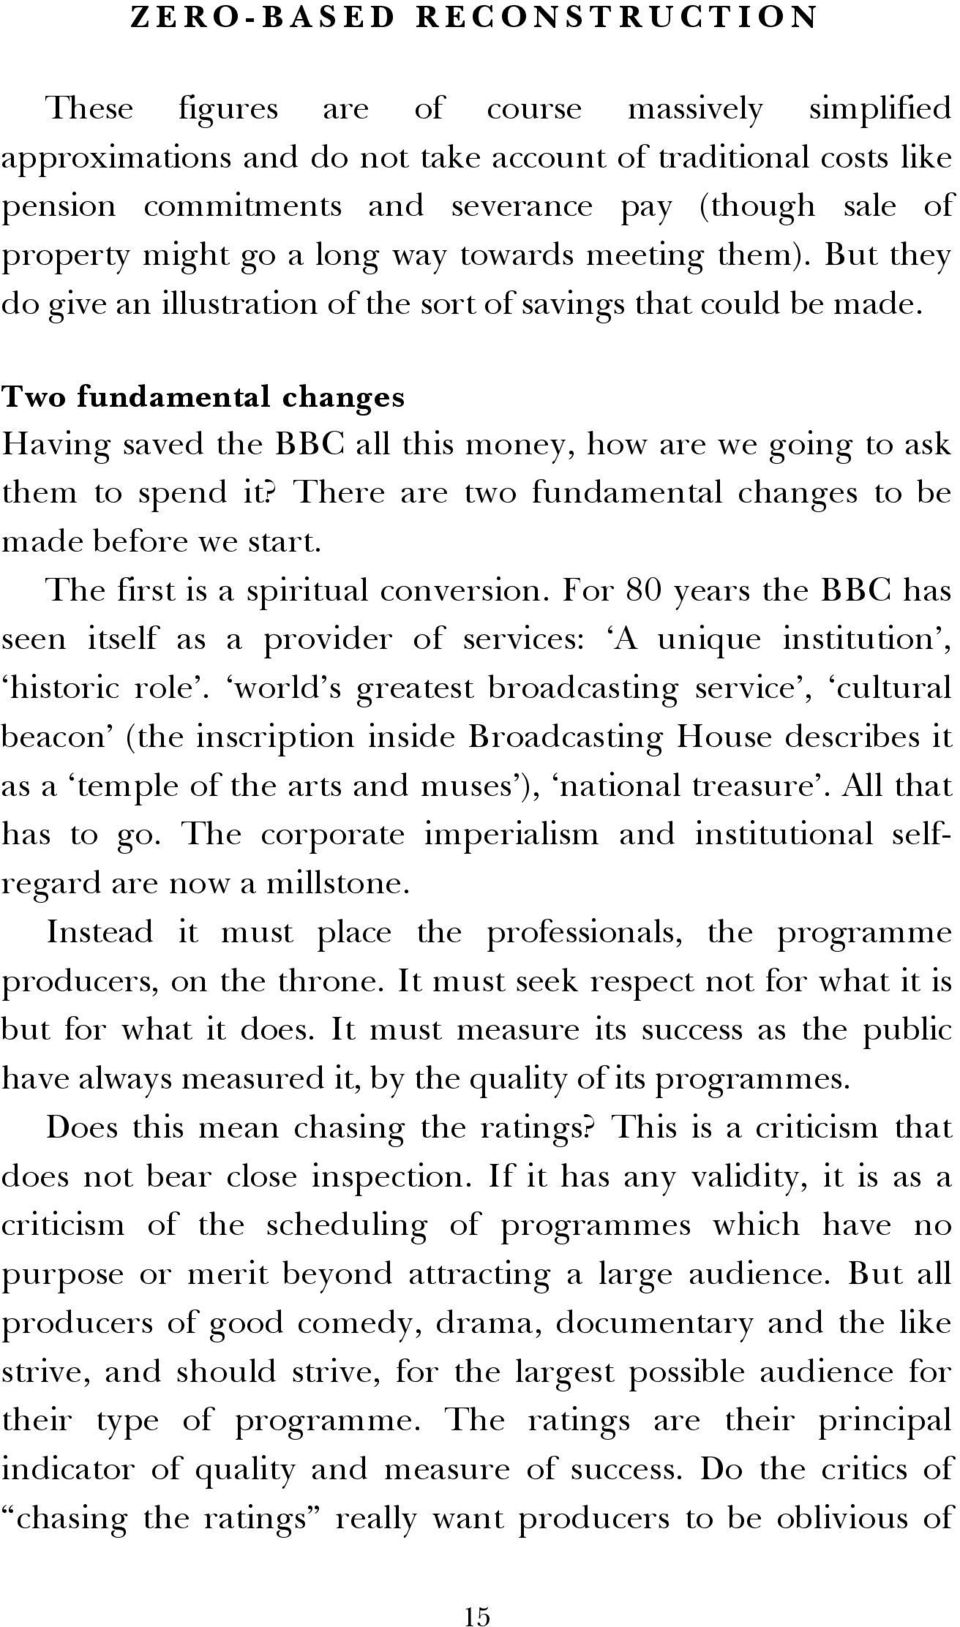 Two fundamental changes Having saved the BBC all this money, how are we going to ask them to spend it? There are two fundamental changes to be made before we start.